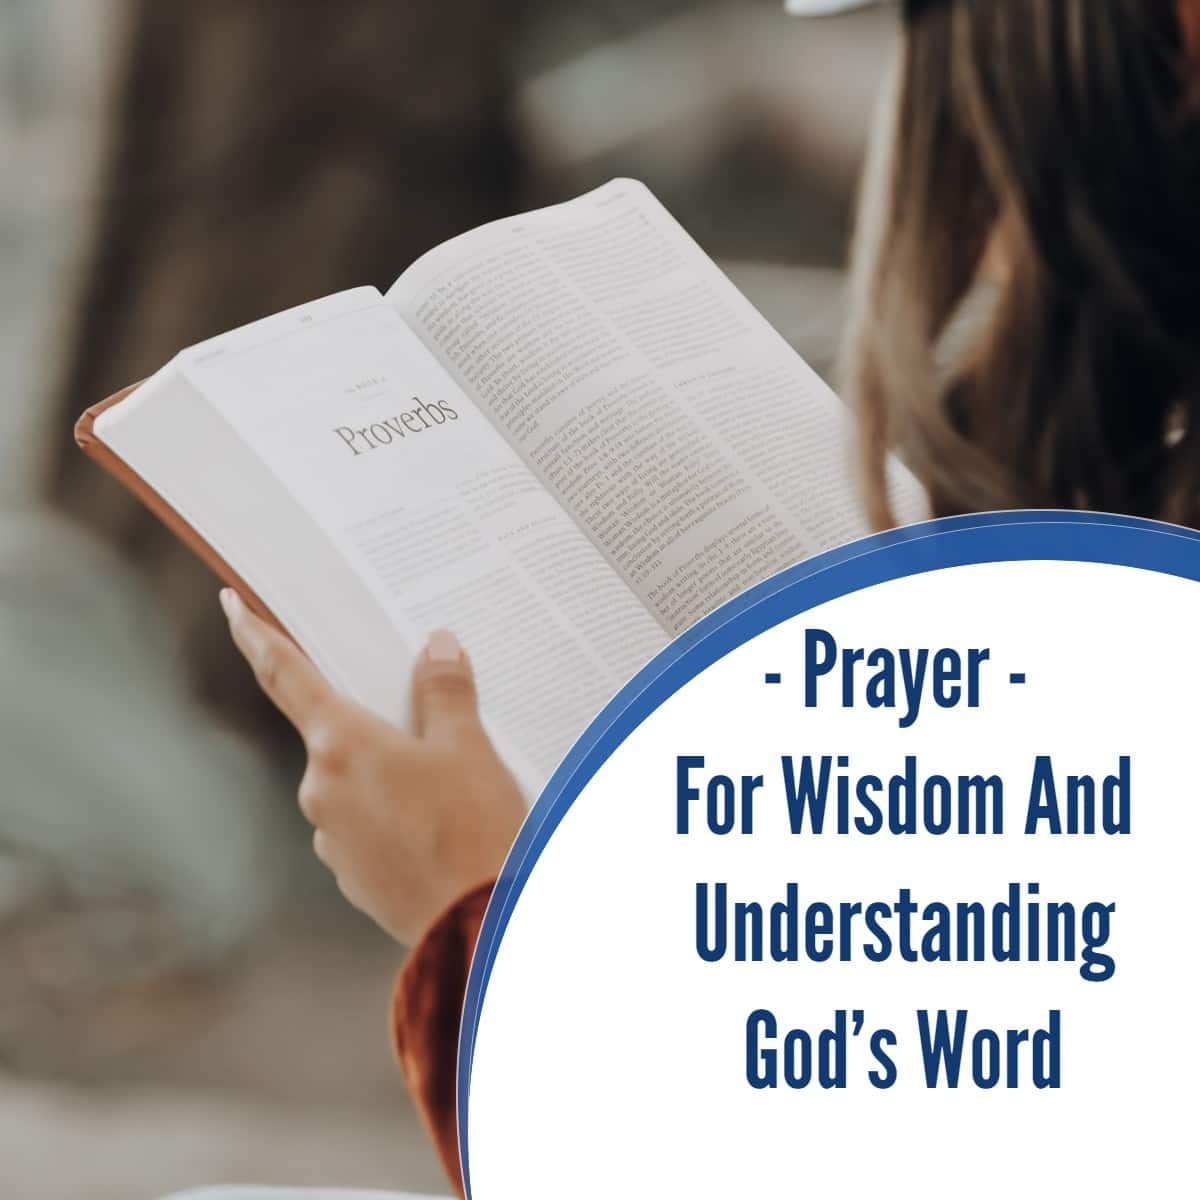 Prayer For Wisdom And Understanding God's Word